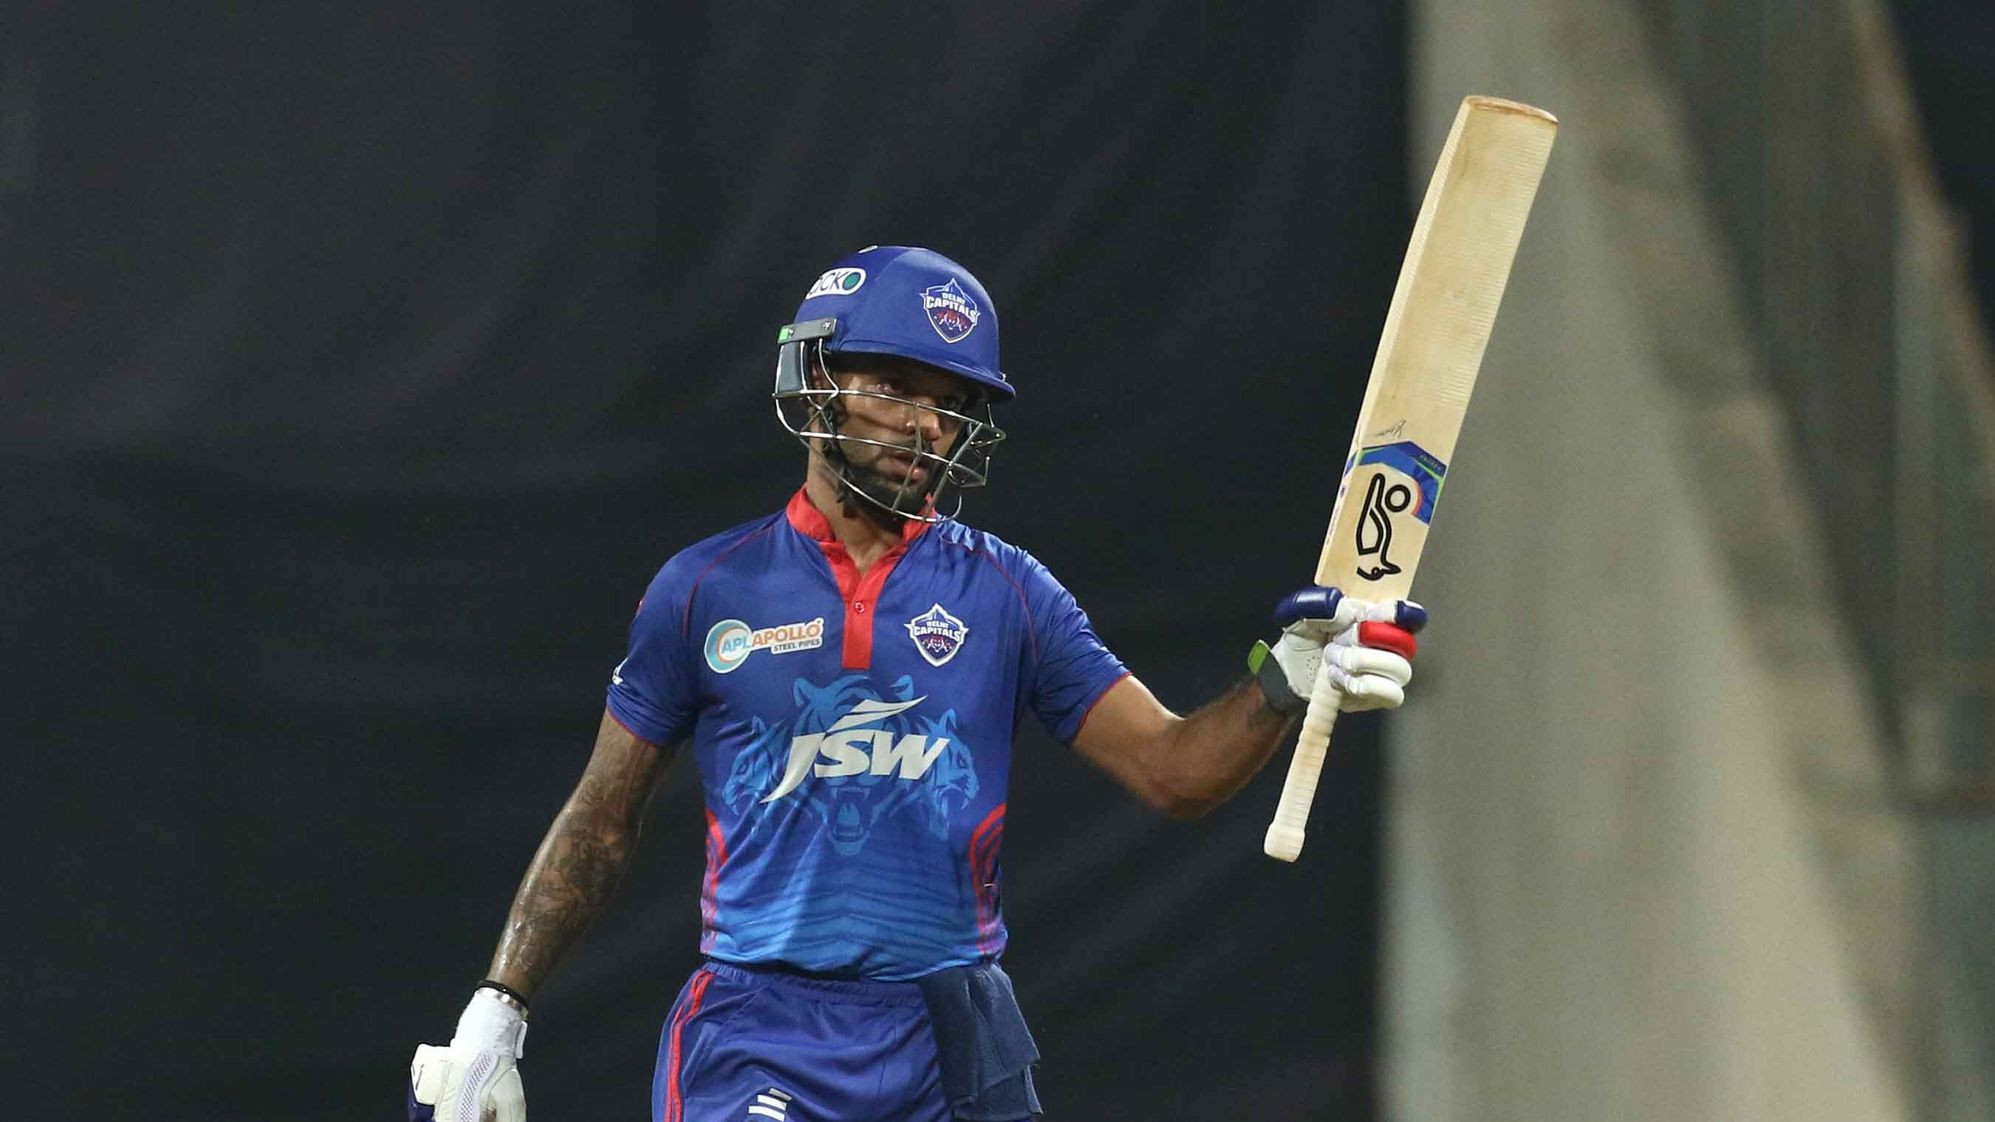 IPL 2021: 'DC not depending on any one individual, performing well as a team', says Shikhar Dhawan